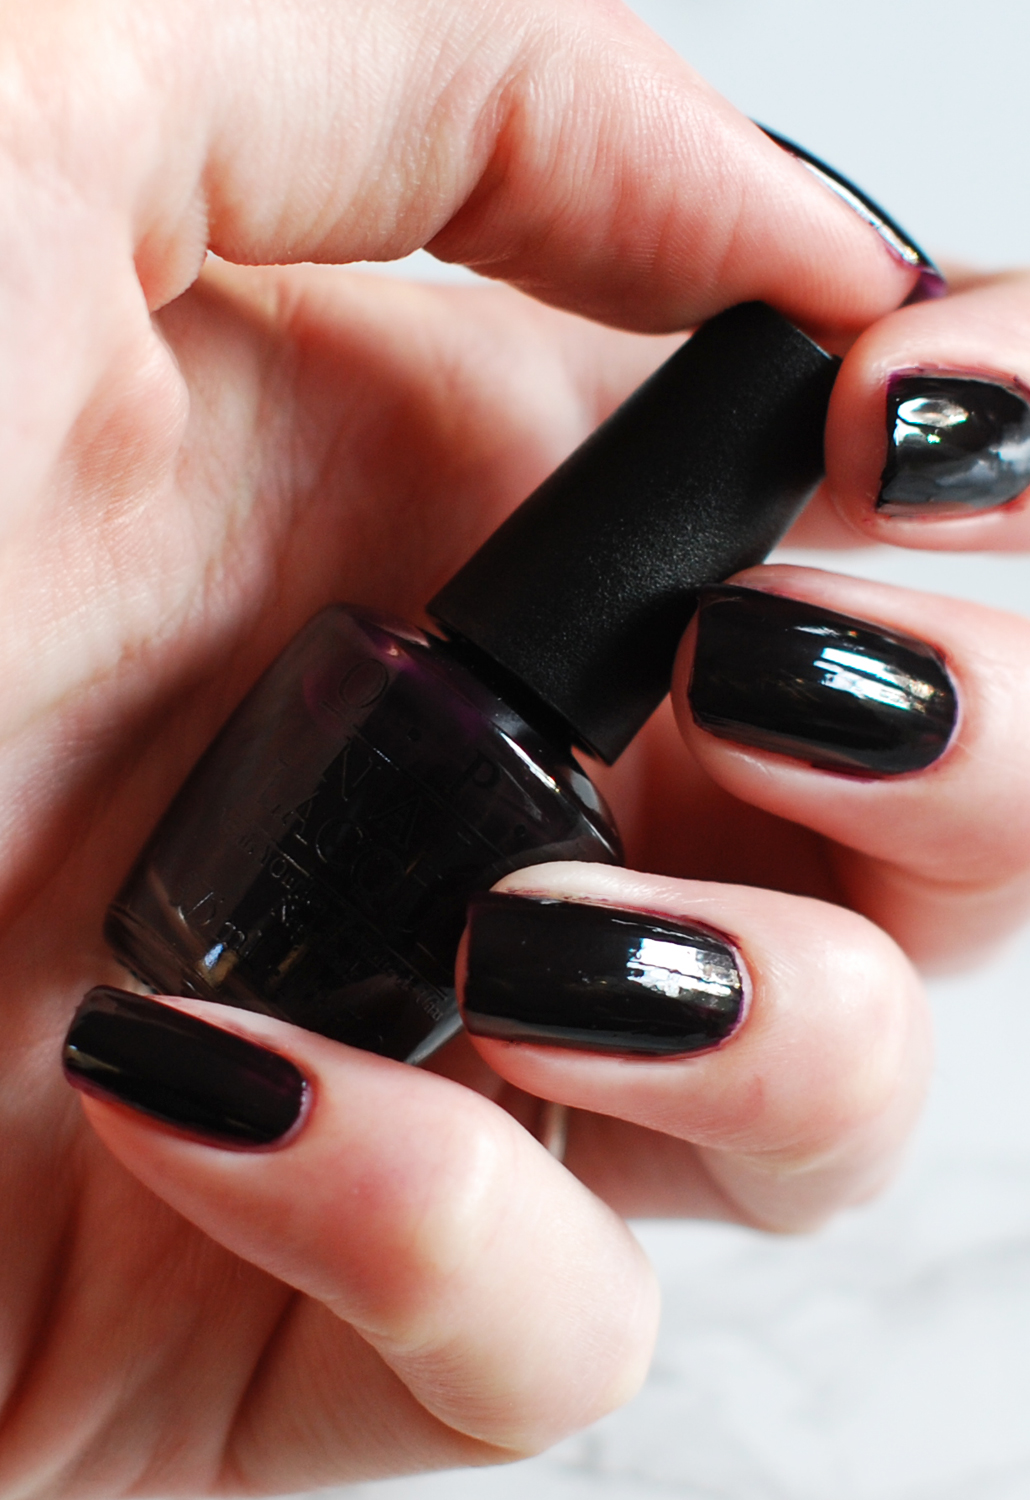 OPI Passport To Color Travel Exclusive review Lincoln Park After Dark